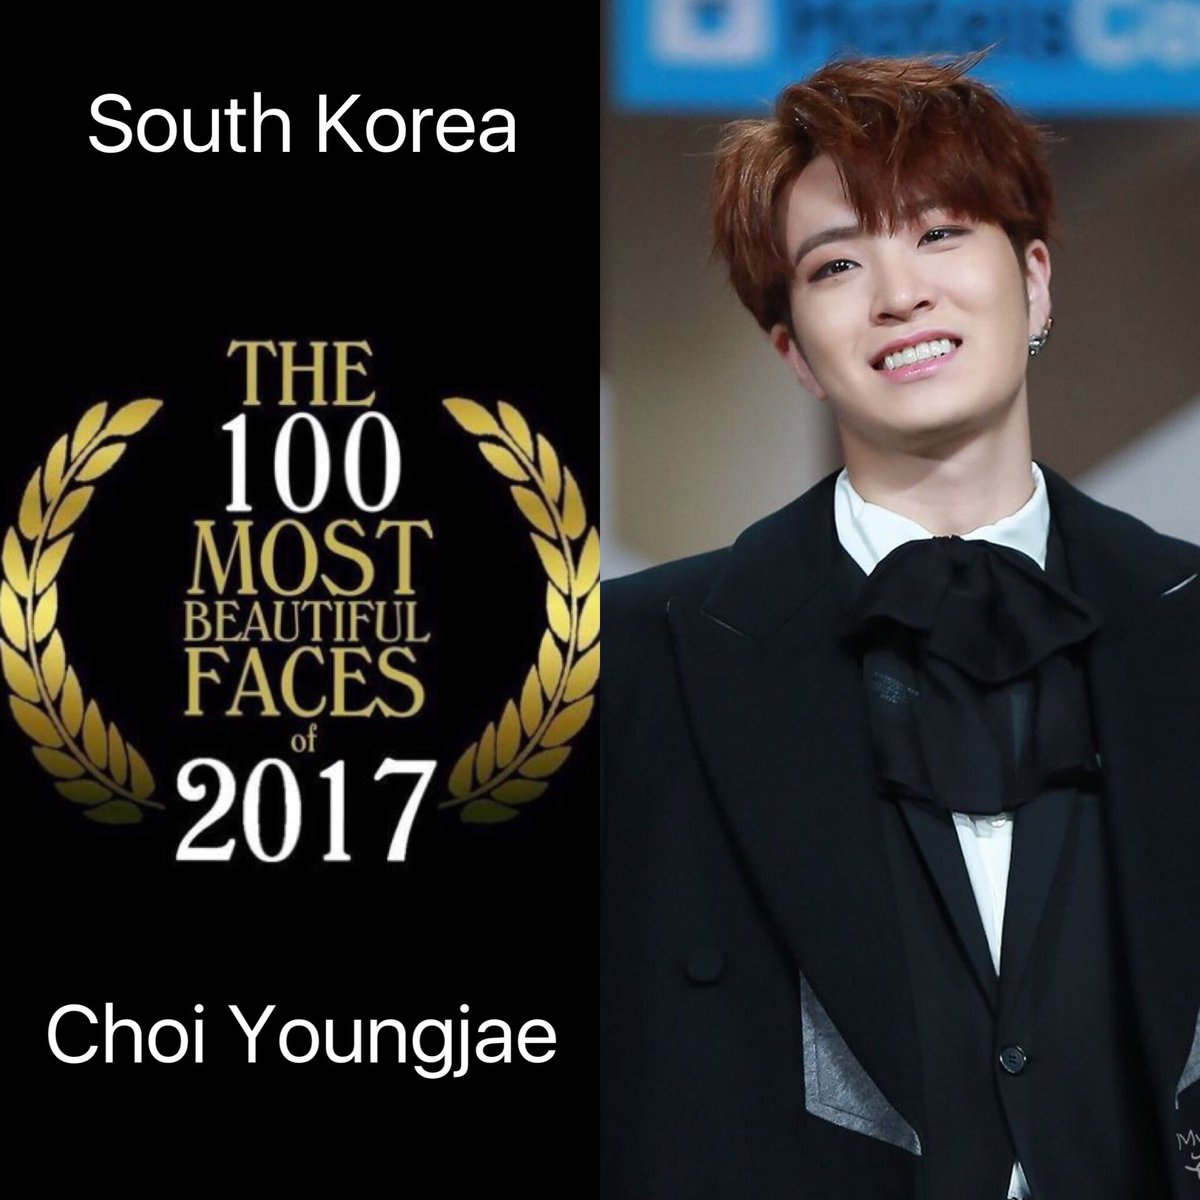 I nominate Choi Youngjae #ChoiYoungJae @GOTYJ_Ars_Vita of #GOT7 from South Korea for #100mosthandsomefaces2017 @tccandler<br>http://pic.twitter.com/NltpZHYnK4